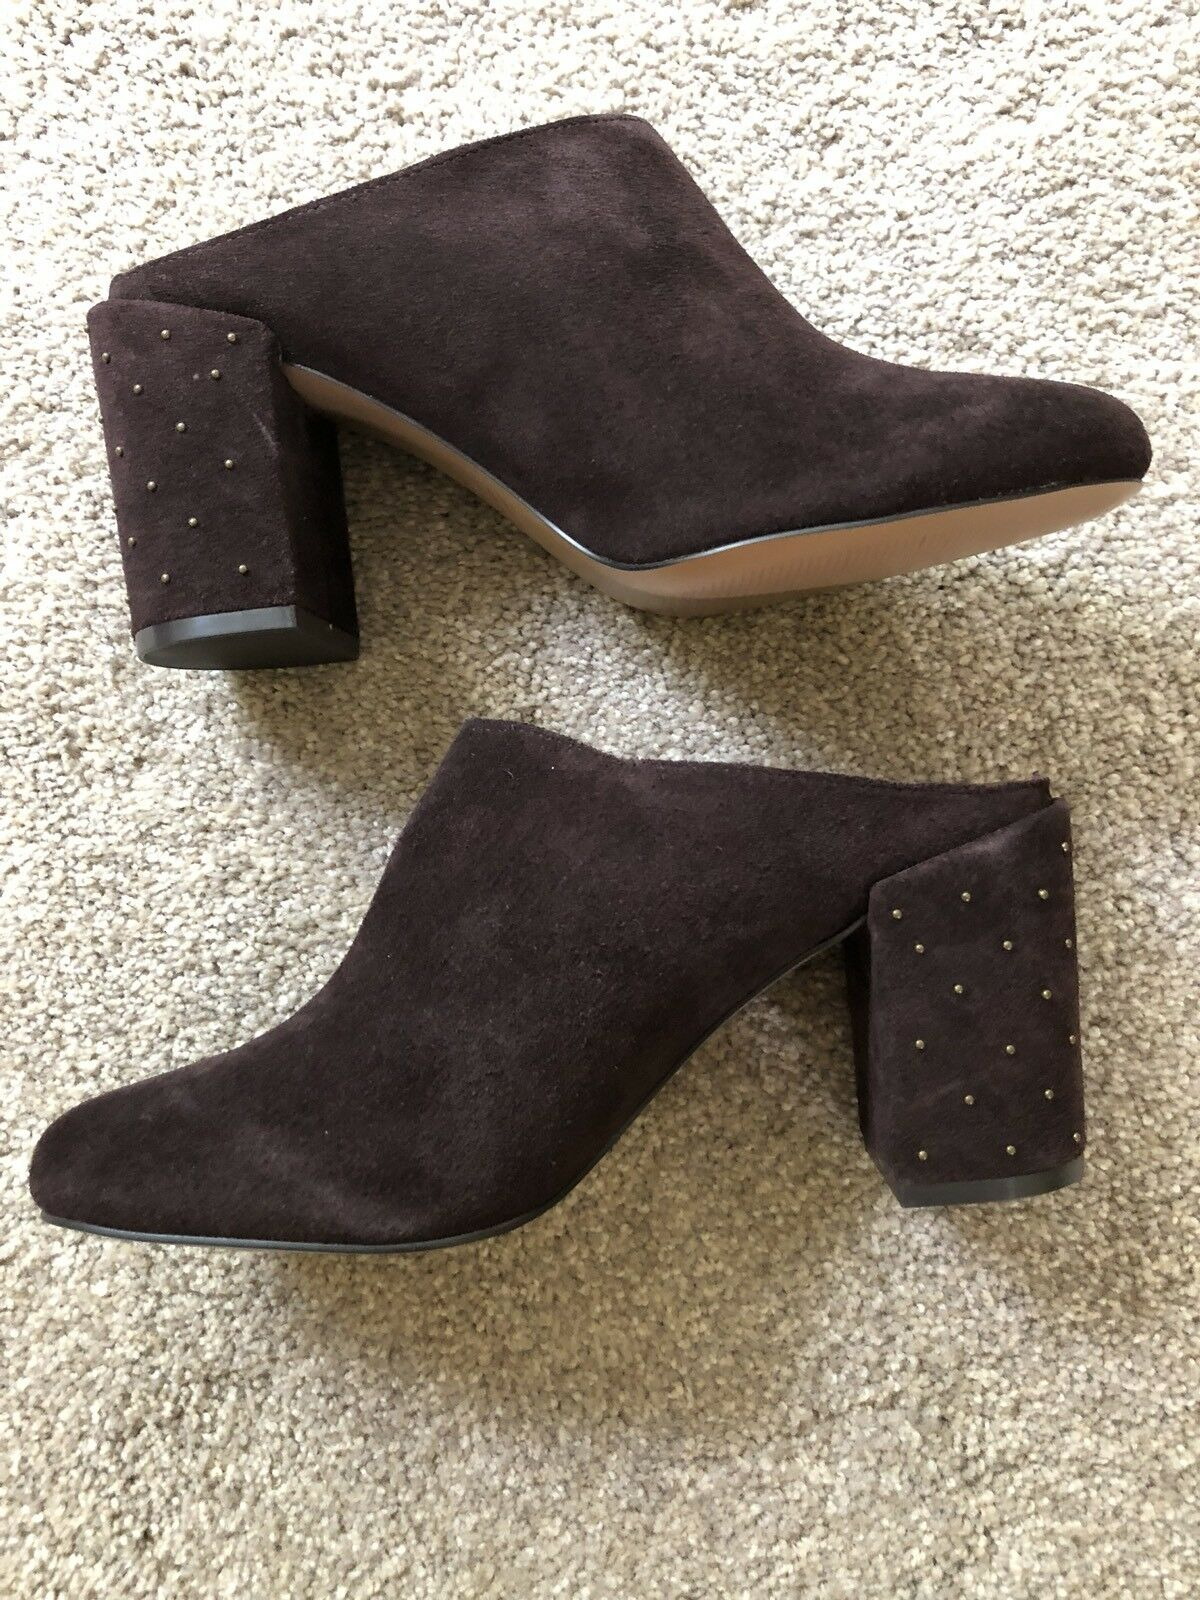 marron Suede Studdrd-heeled Clogs Mules Slides Taille 7.5US